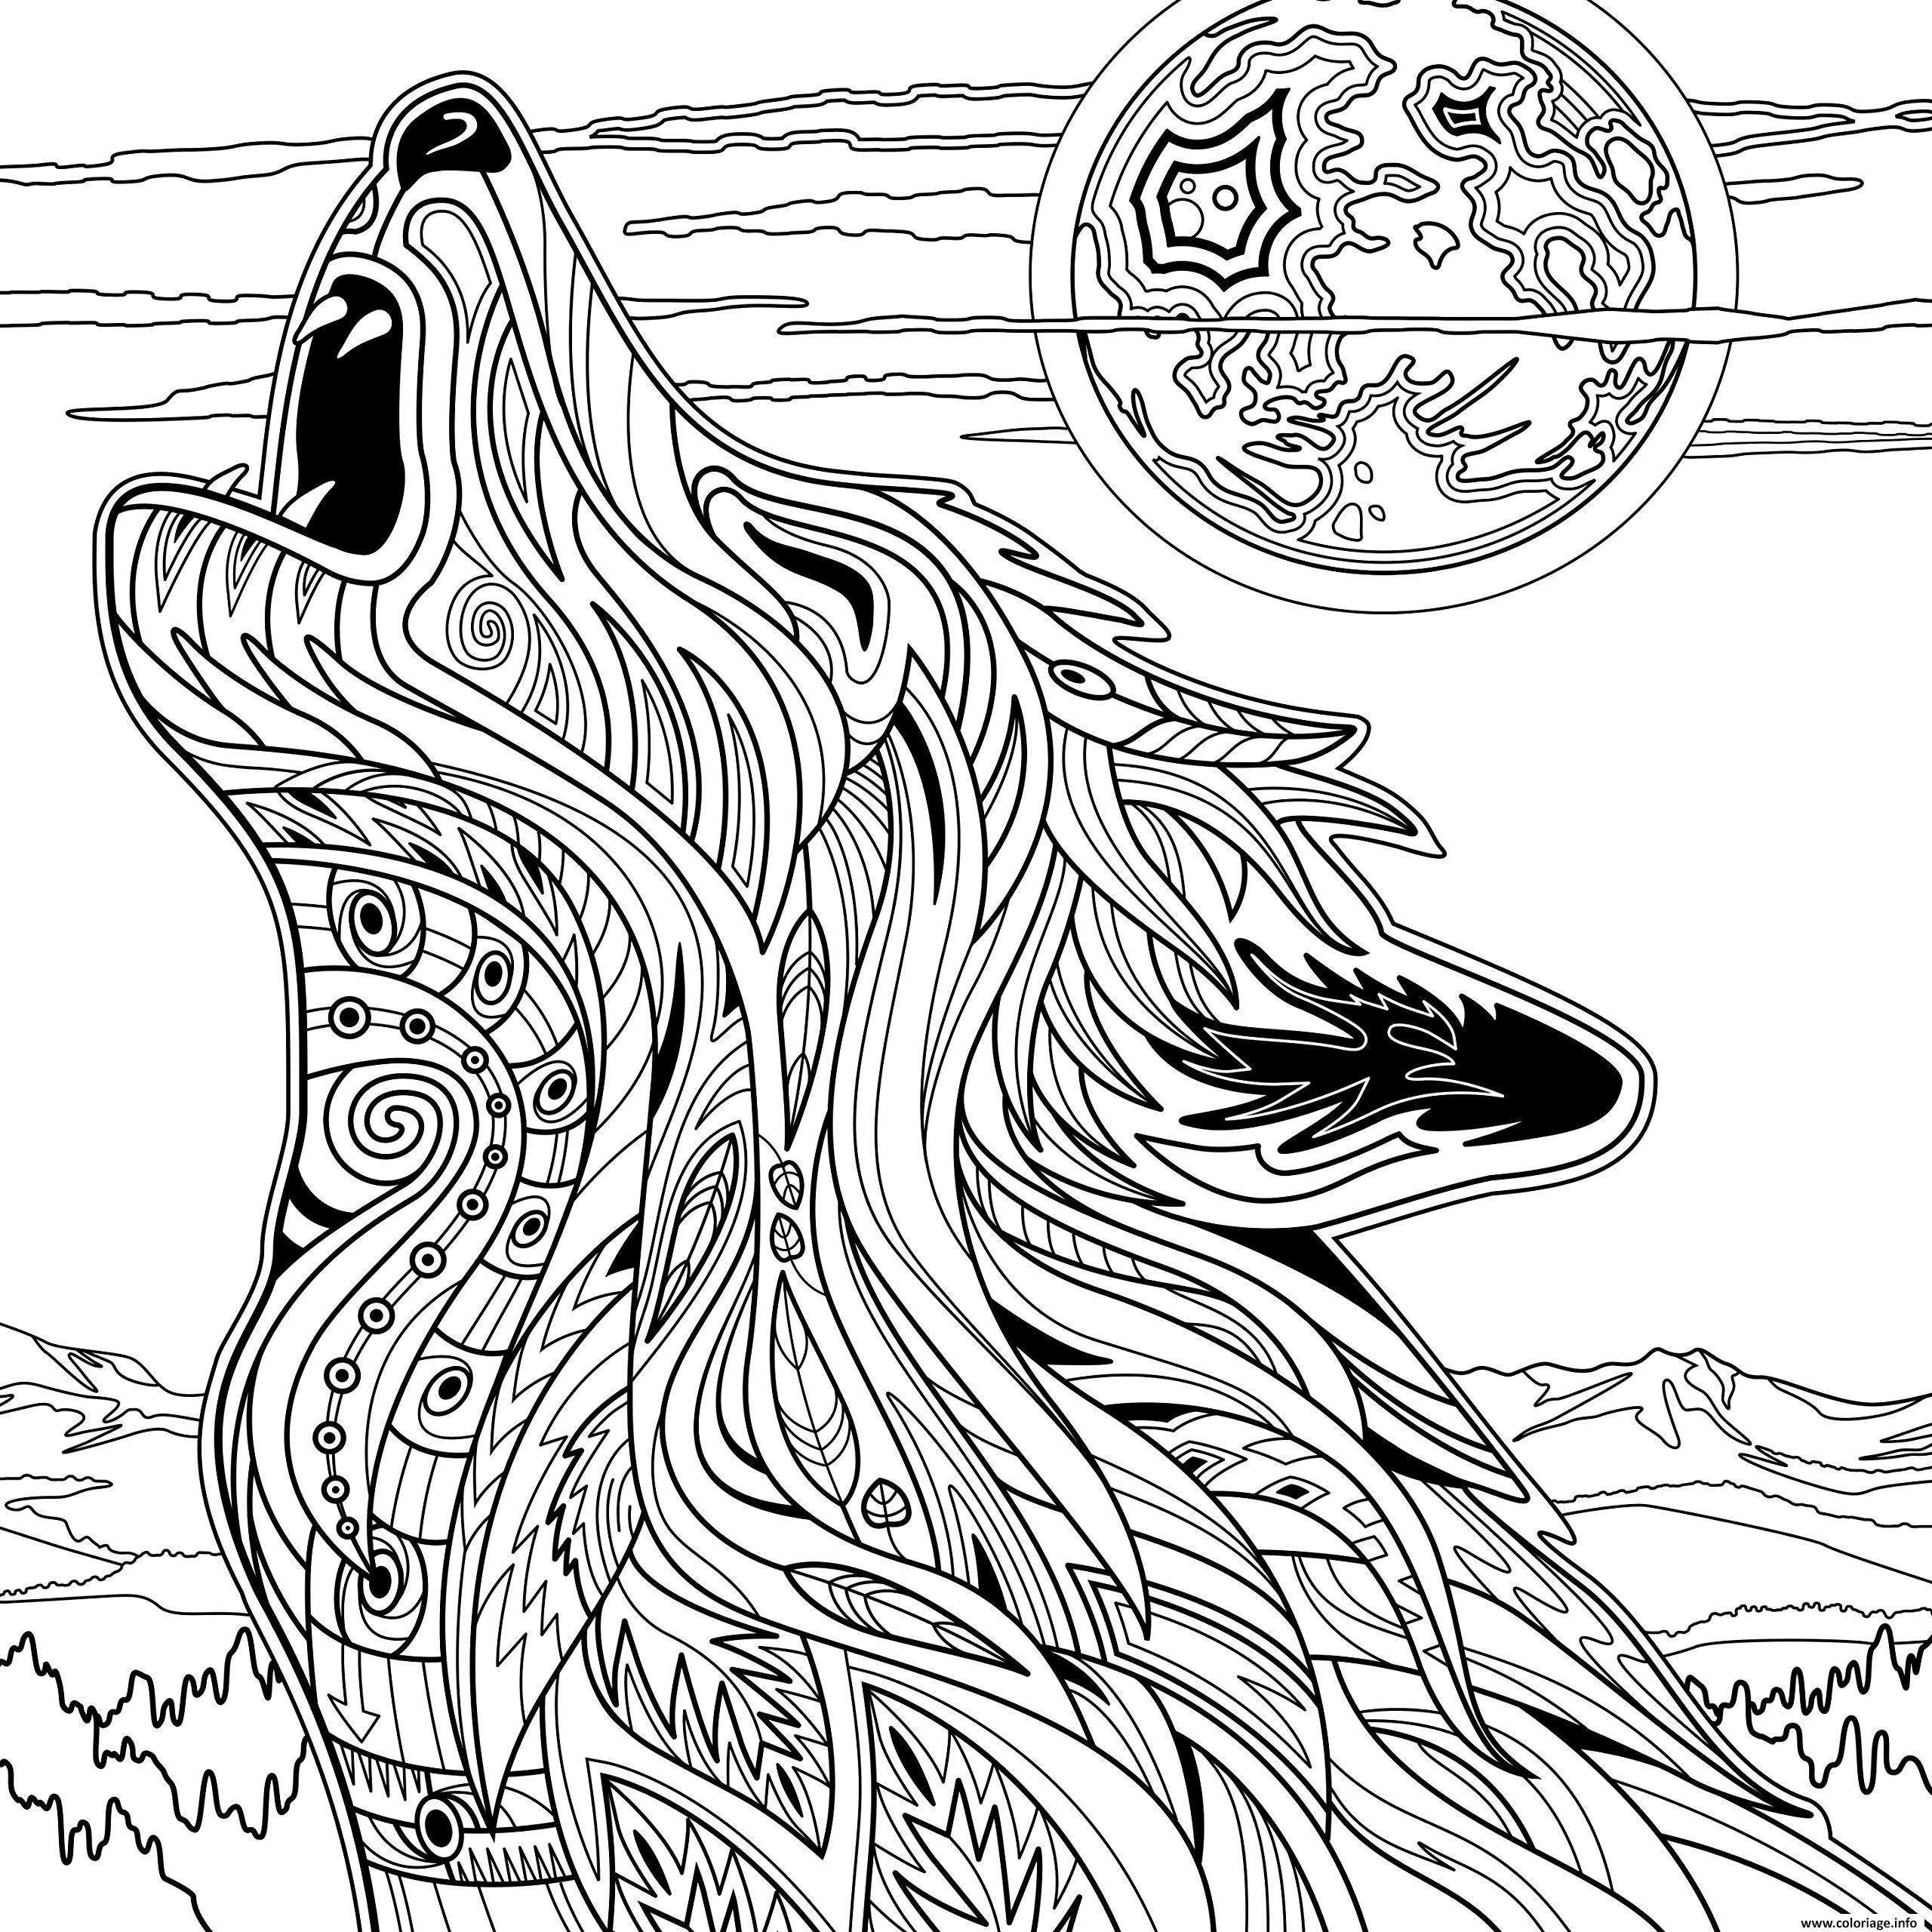 Coloriage adulte loup animaux yellowstone national park - Dessin a imprimer loup ...